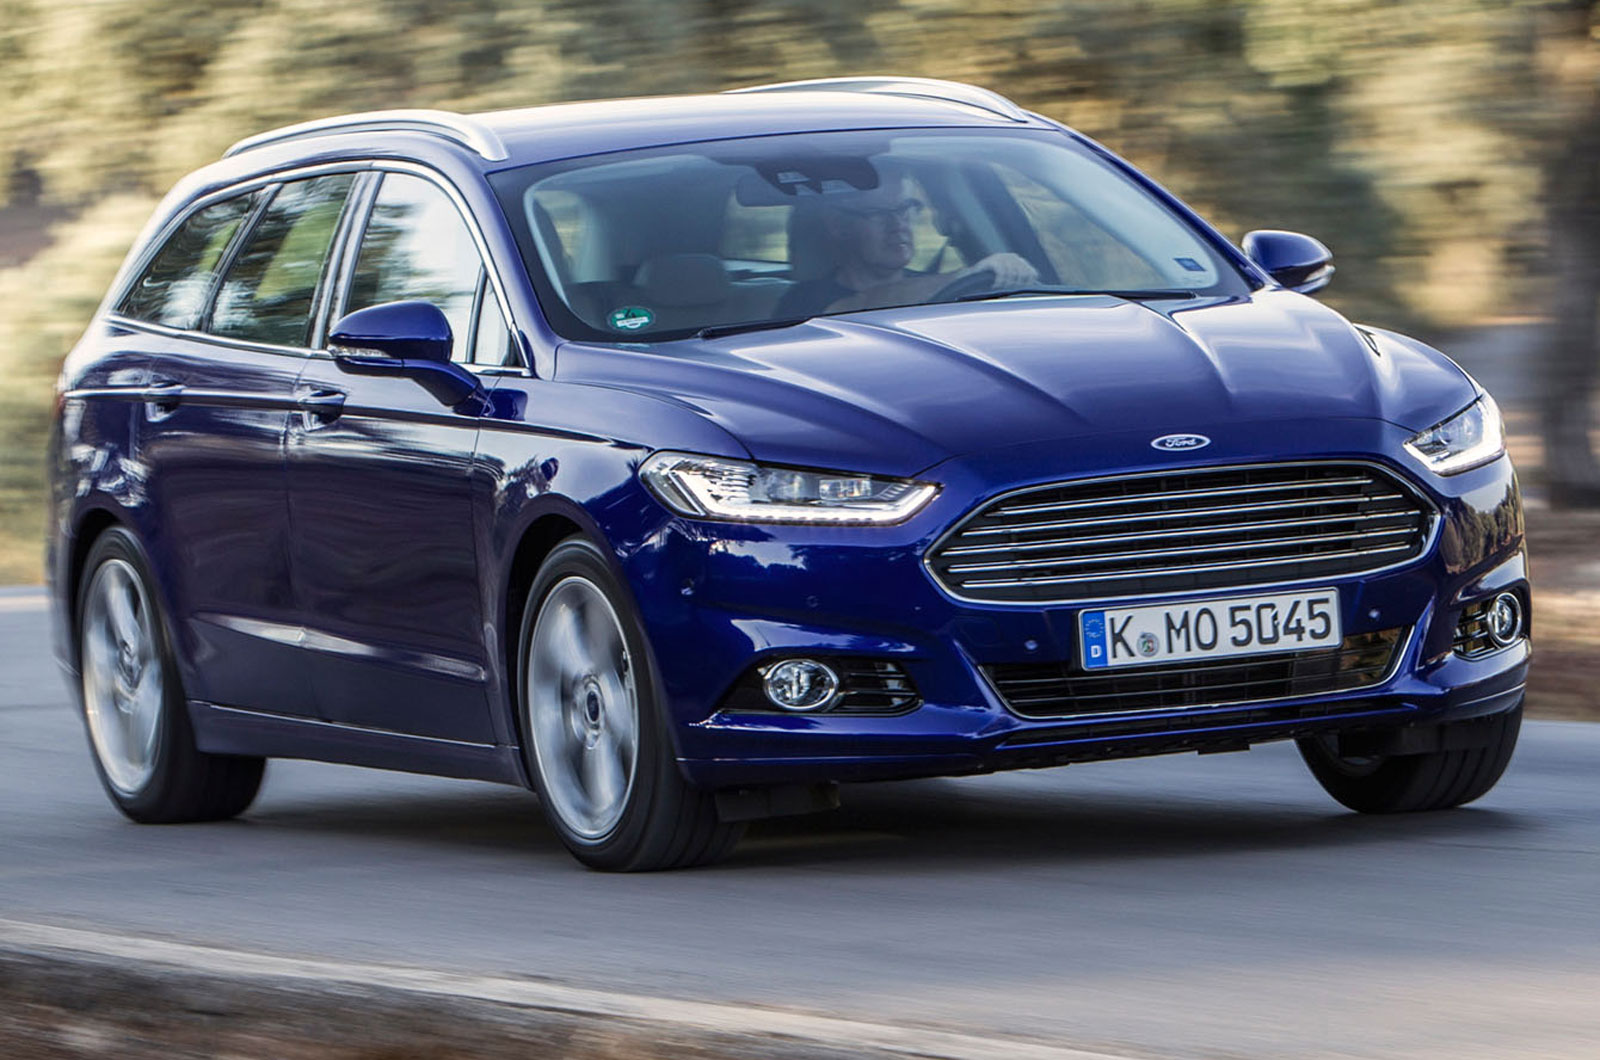 2014 ford mondeo estate 1 5t ecoboost first drive review. Black Bedroom Furniture Sets. Home Design Ideas